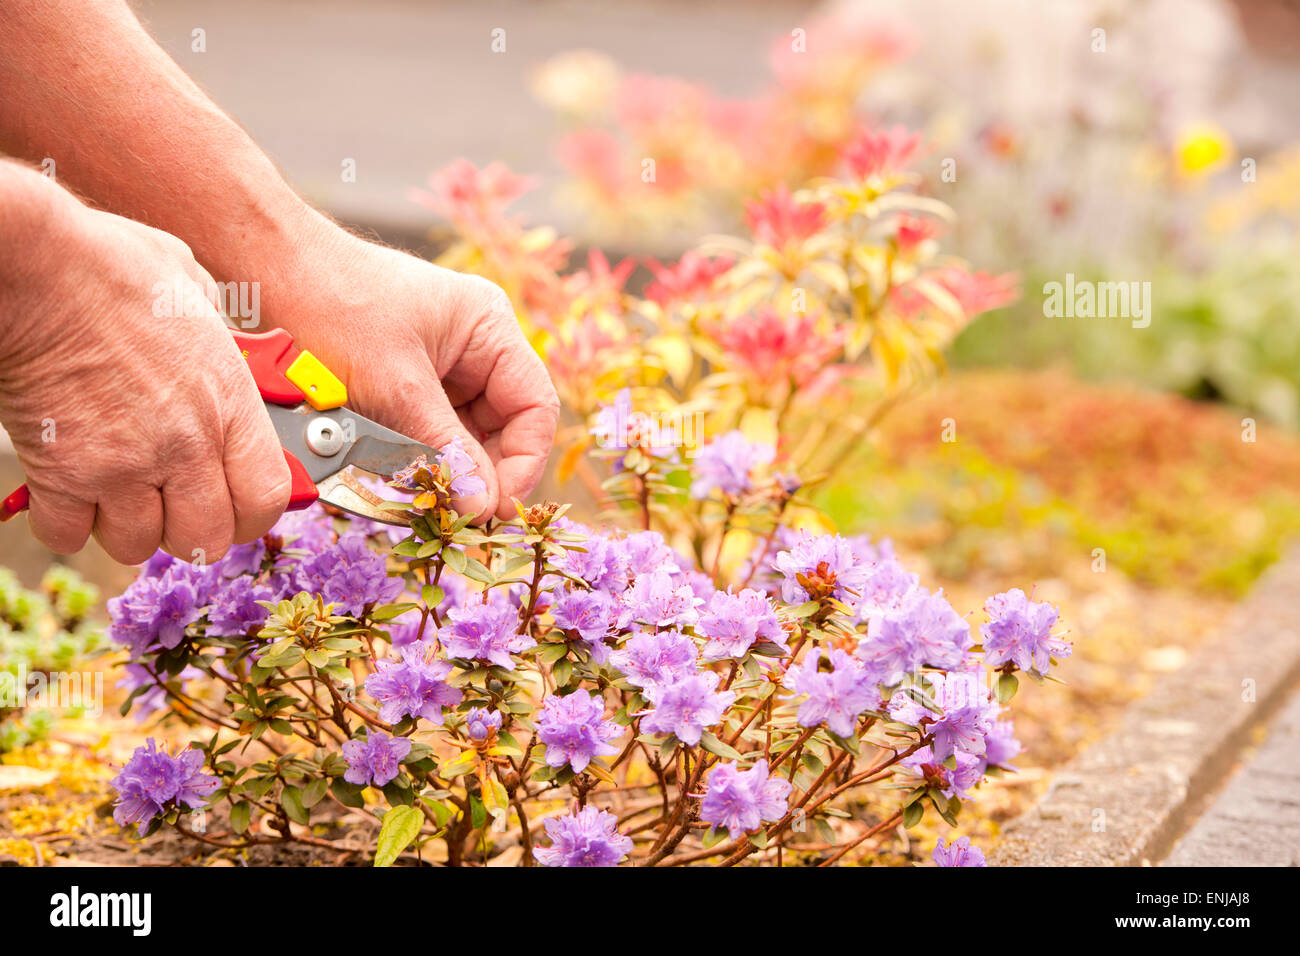 perform maintenance in the garden - Stock Image